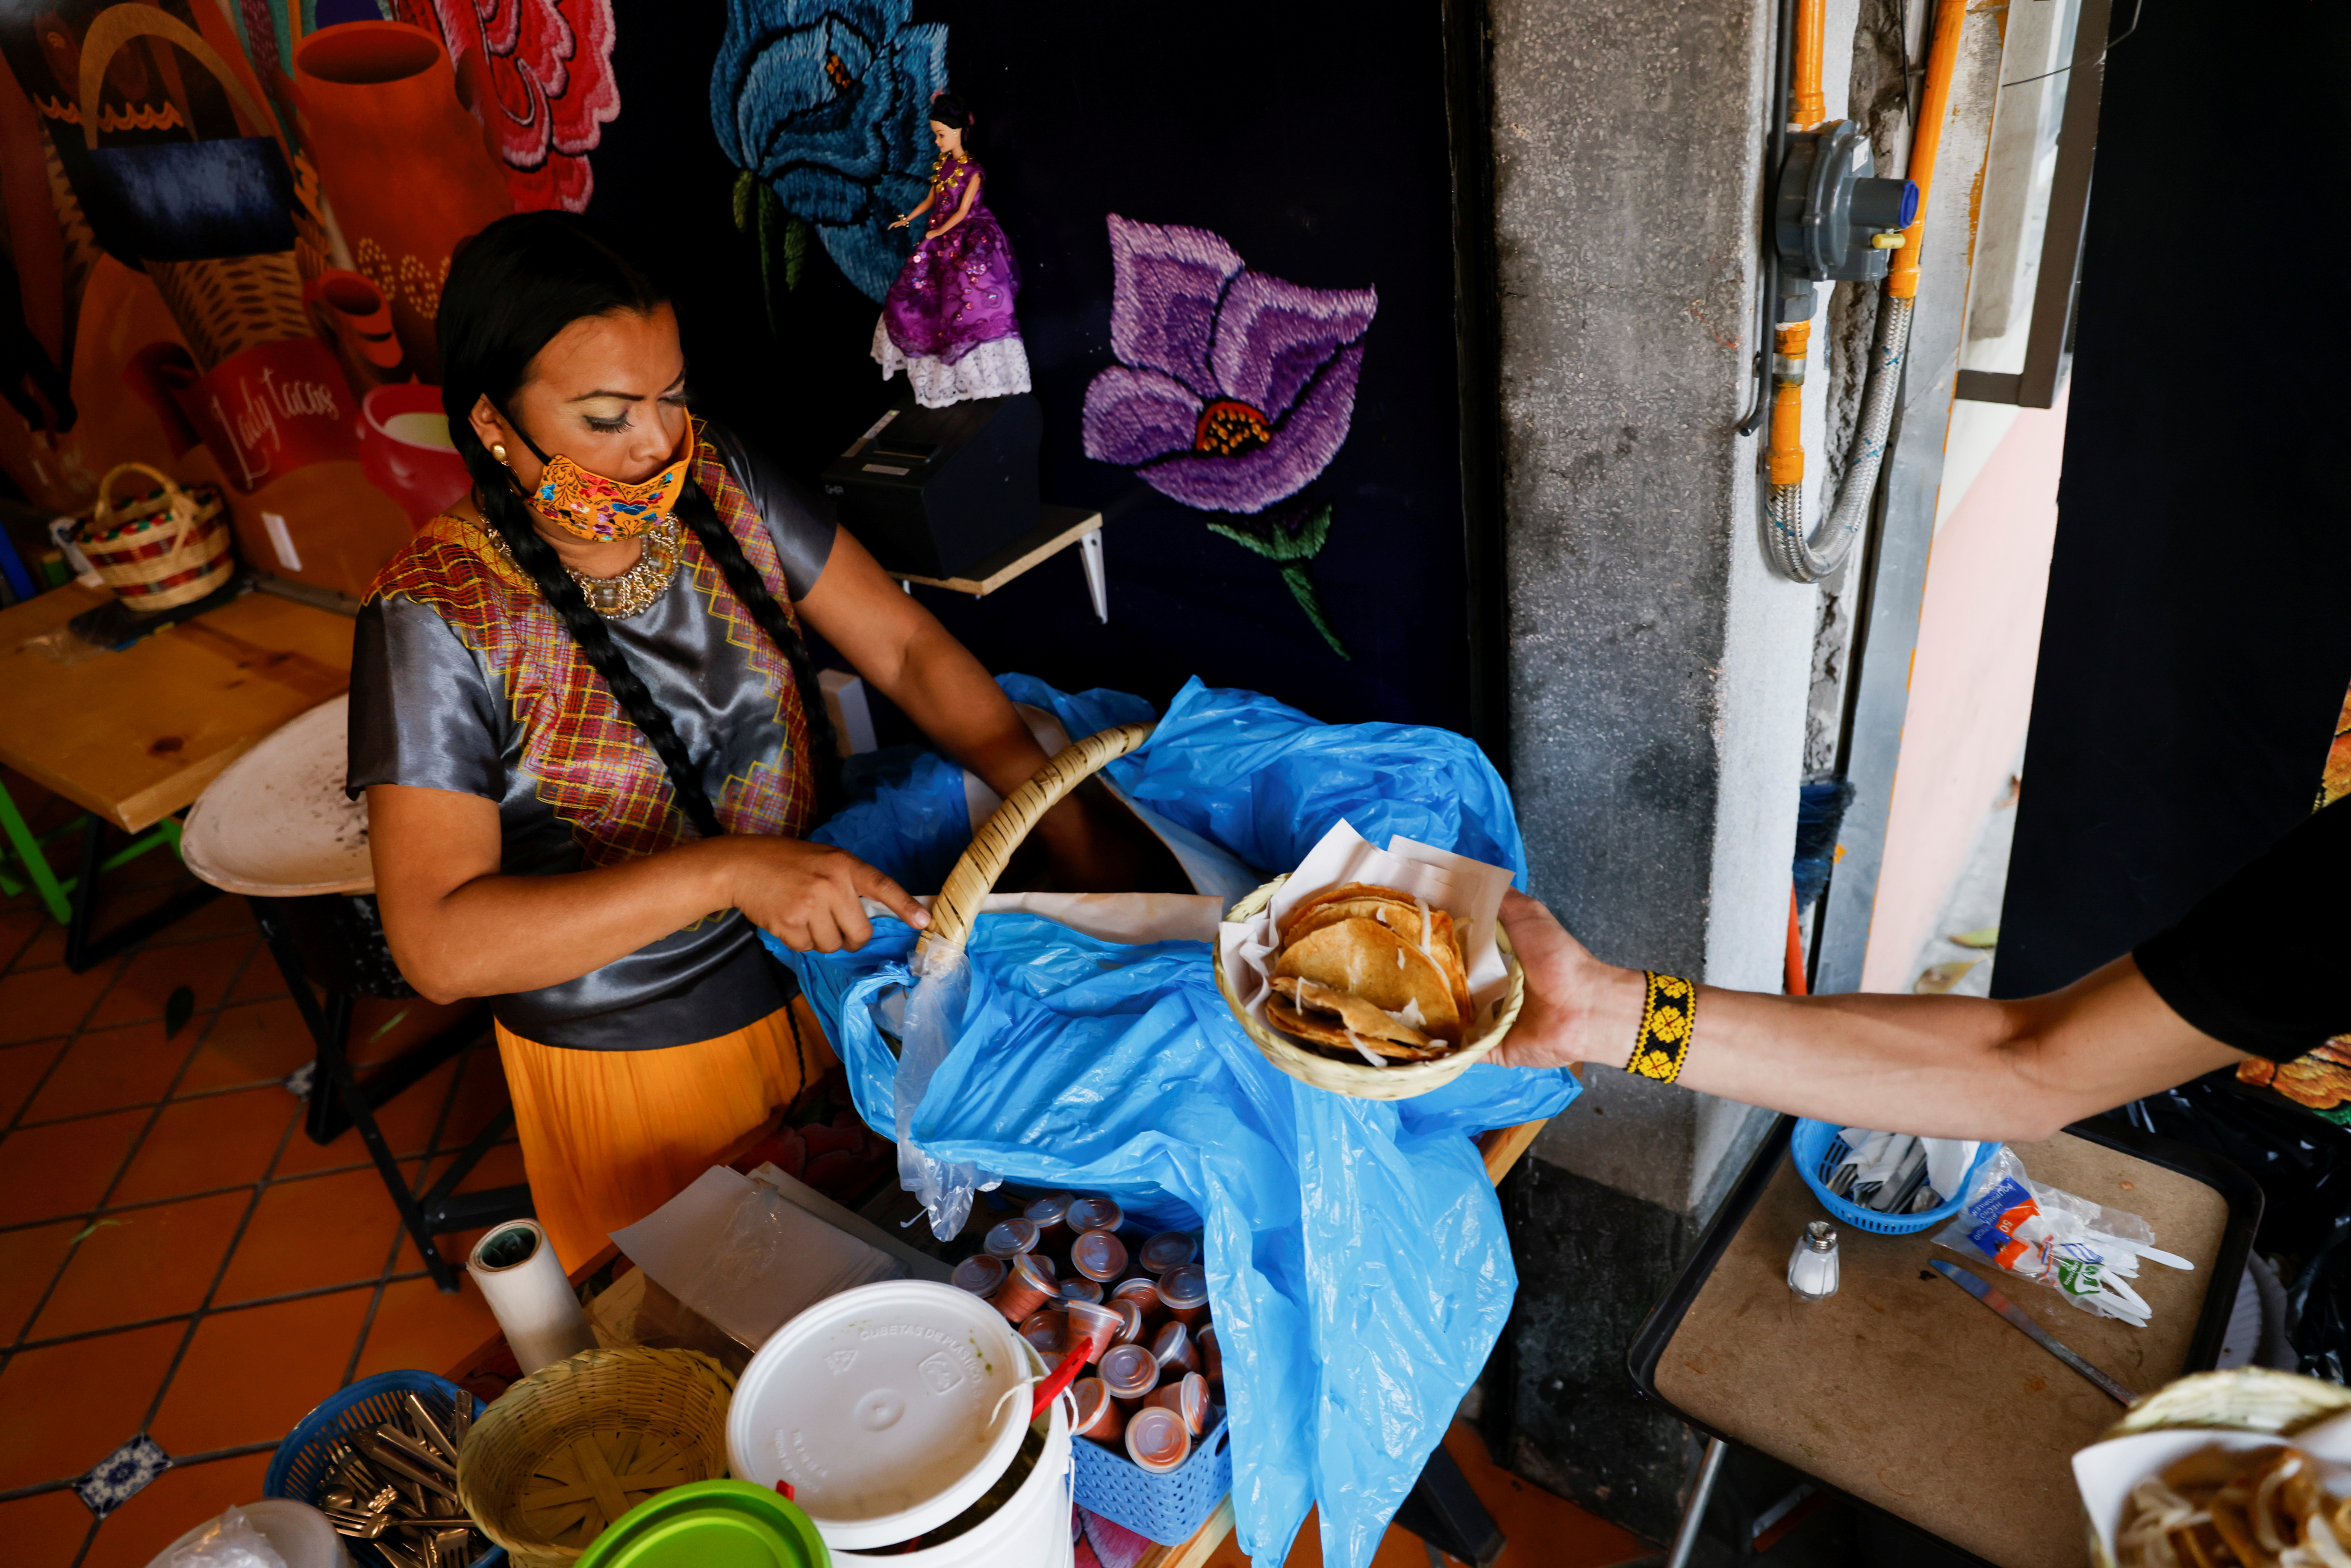 Francisco Marven, an indigenous transgender woman known as Lady Tacos de Canasta who starred in the Netflix series Taco Chronicles serves tacos at her restaurant, as she is set to campaign as a lawmaker in the local elections in June mid-terms in Mexico City, Mexico April 9, 2021. Picture taken April 9, 2021.REUTERS/Carlos Jasso